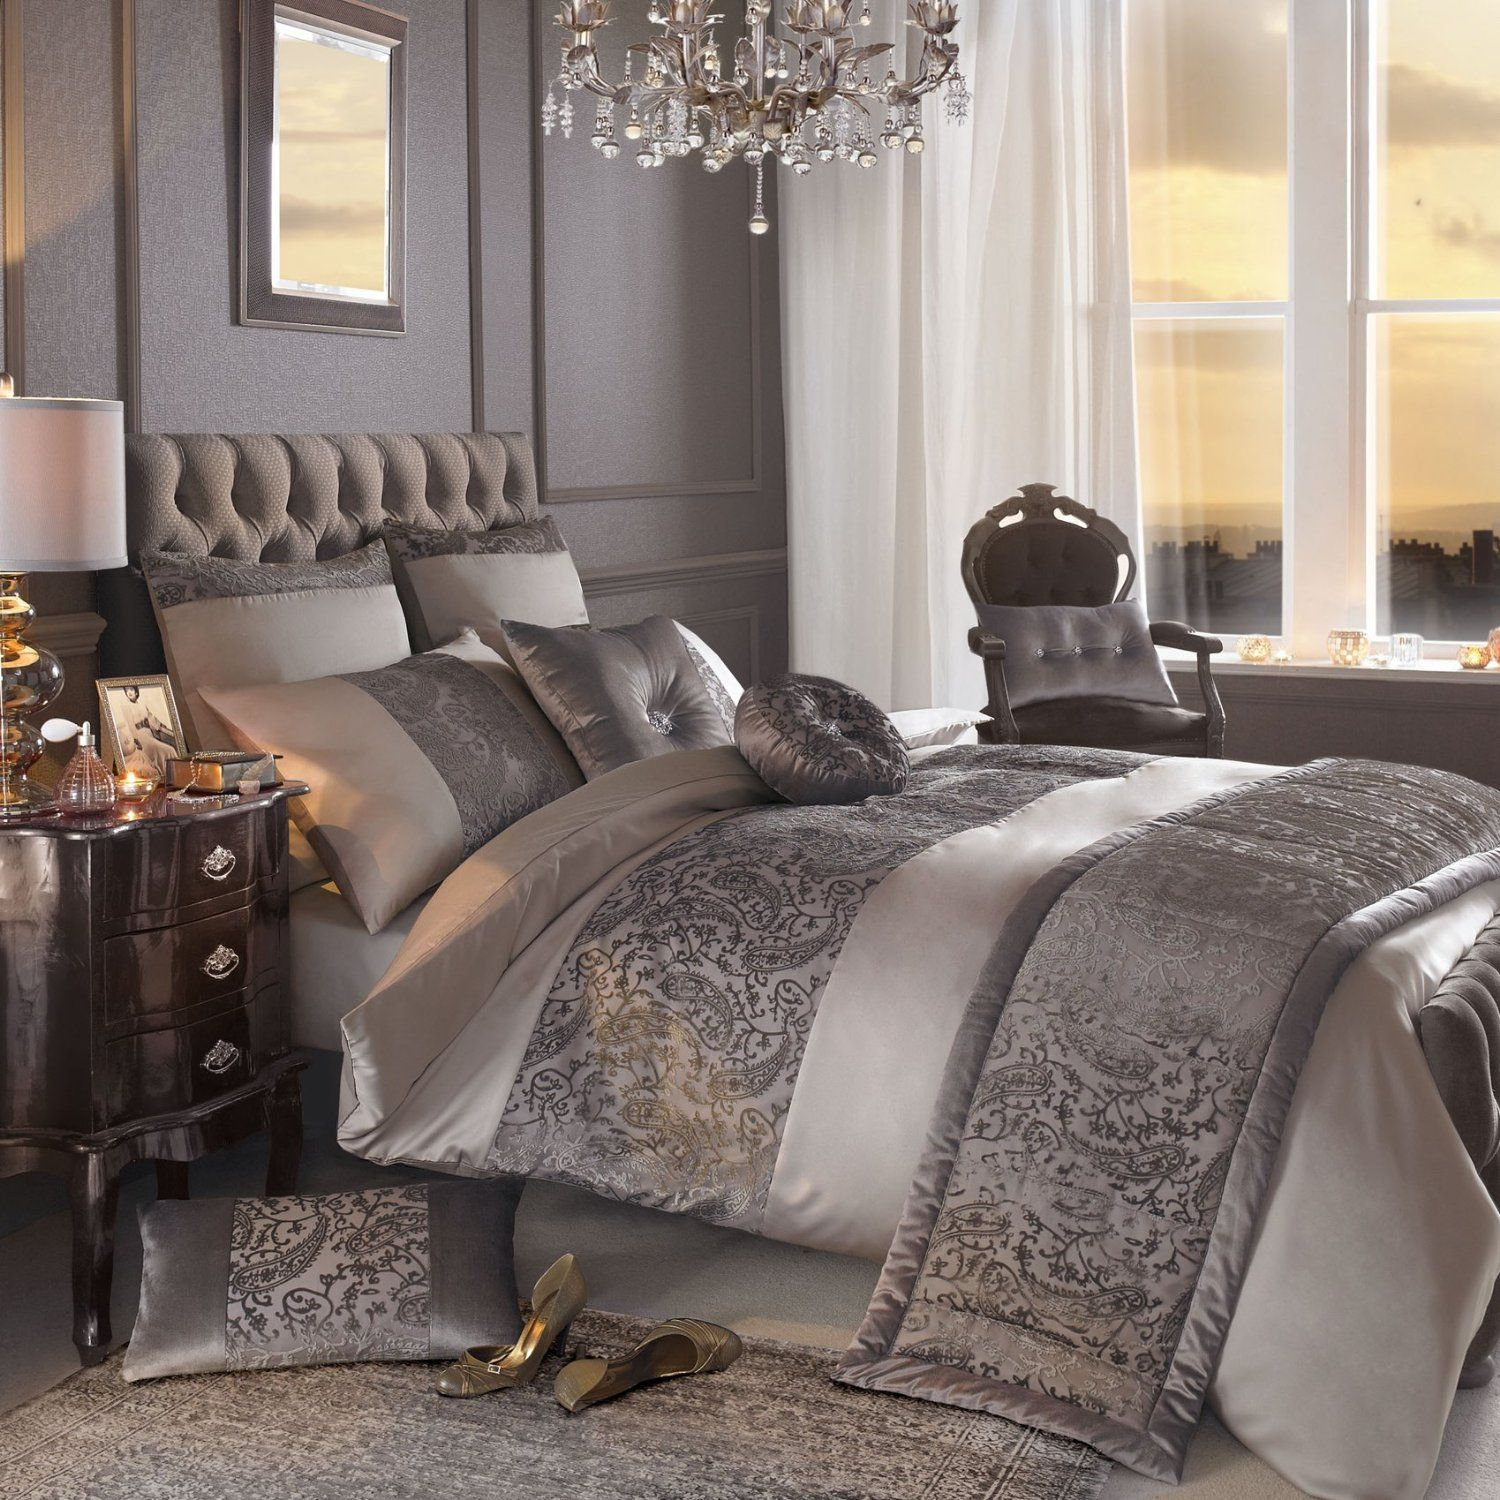 Bedding jardin collection bedding collections bed amp bath macy s - Kylie Minogue Stella Luxury Satin Designer Bedding Duvet Quilt Cover Truffle Grey Silver